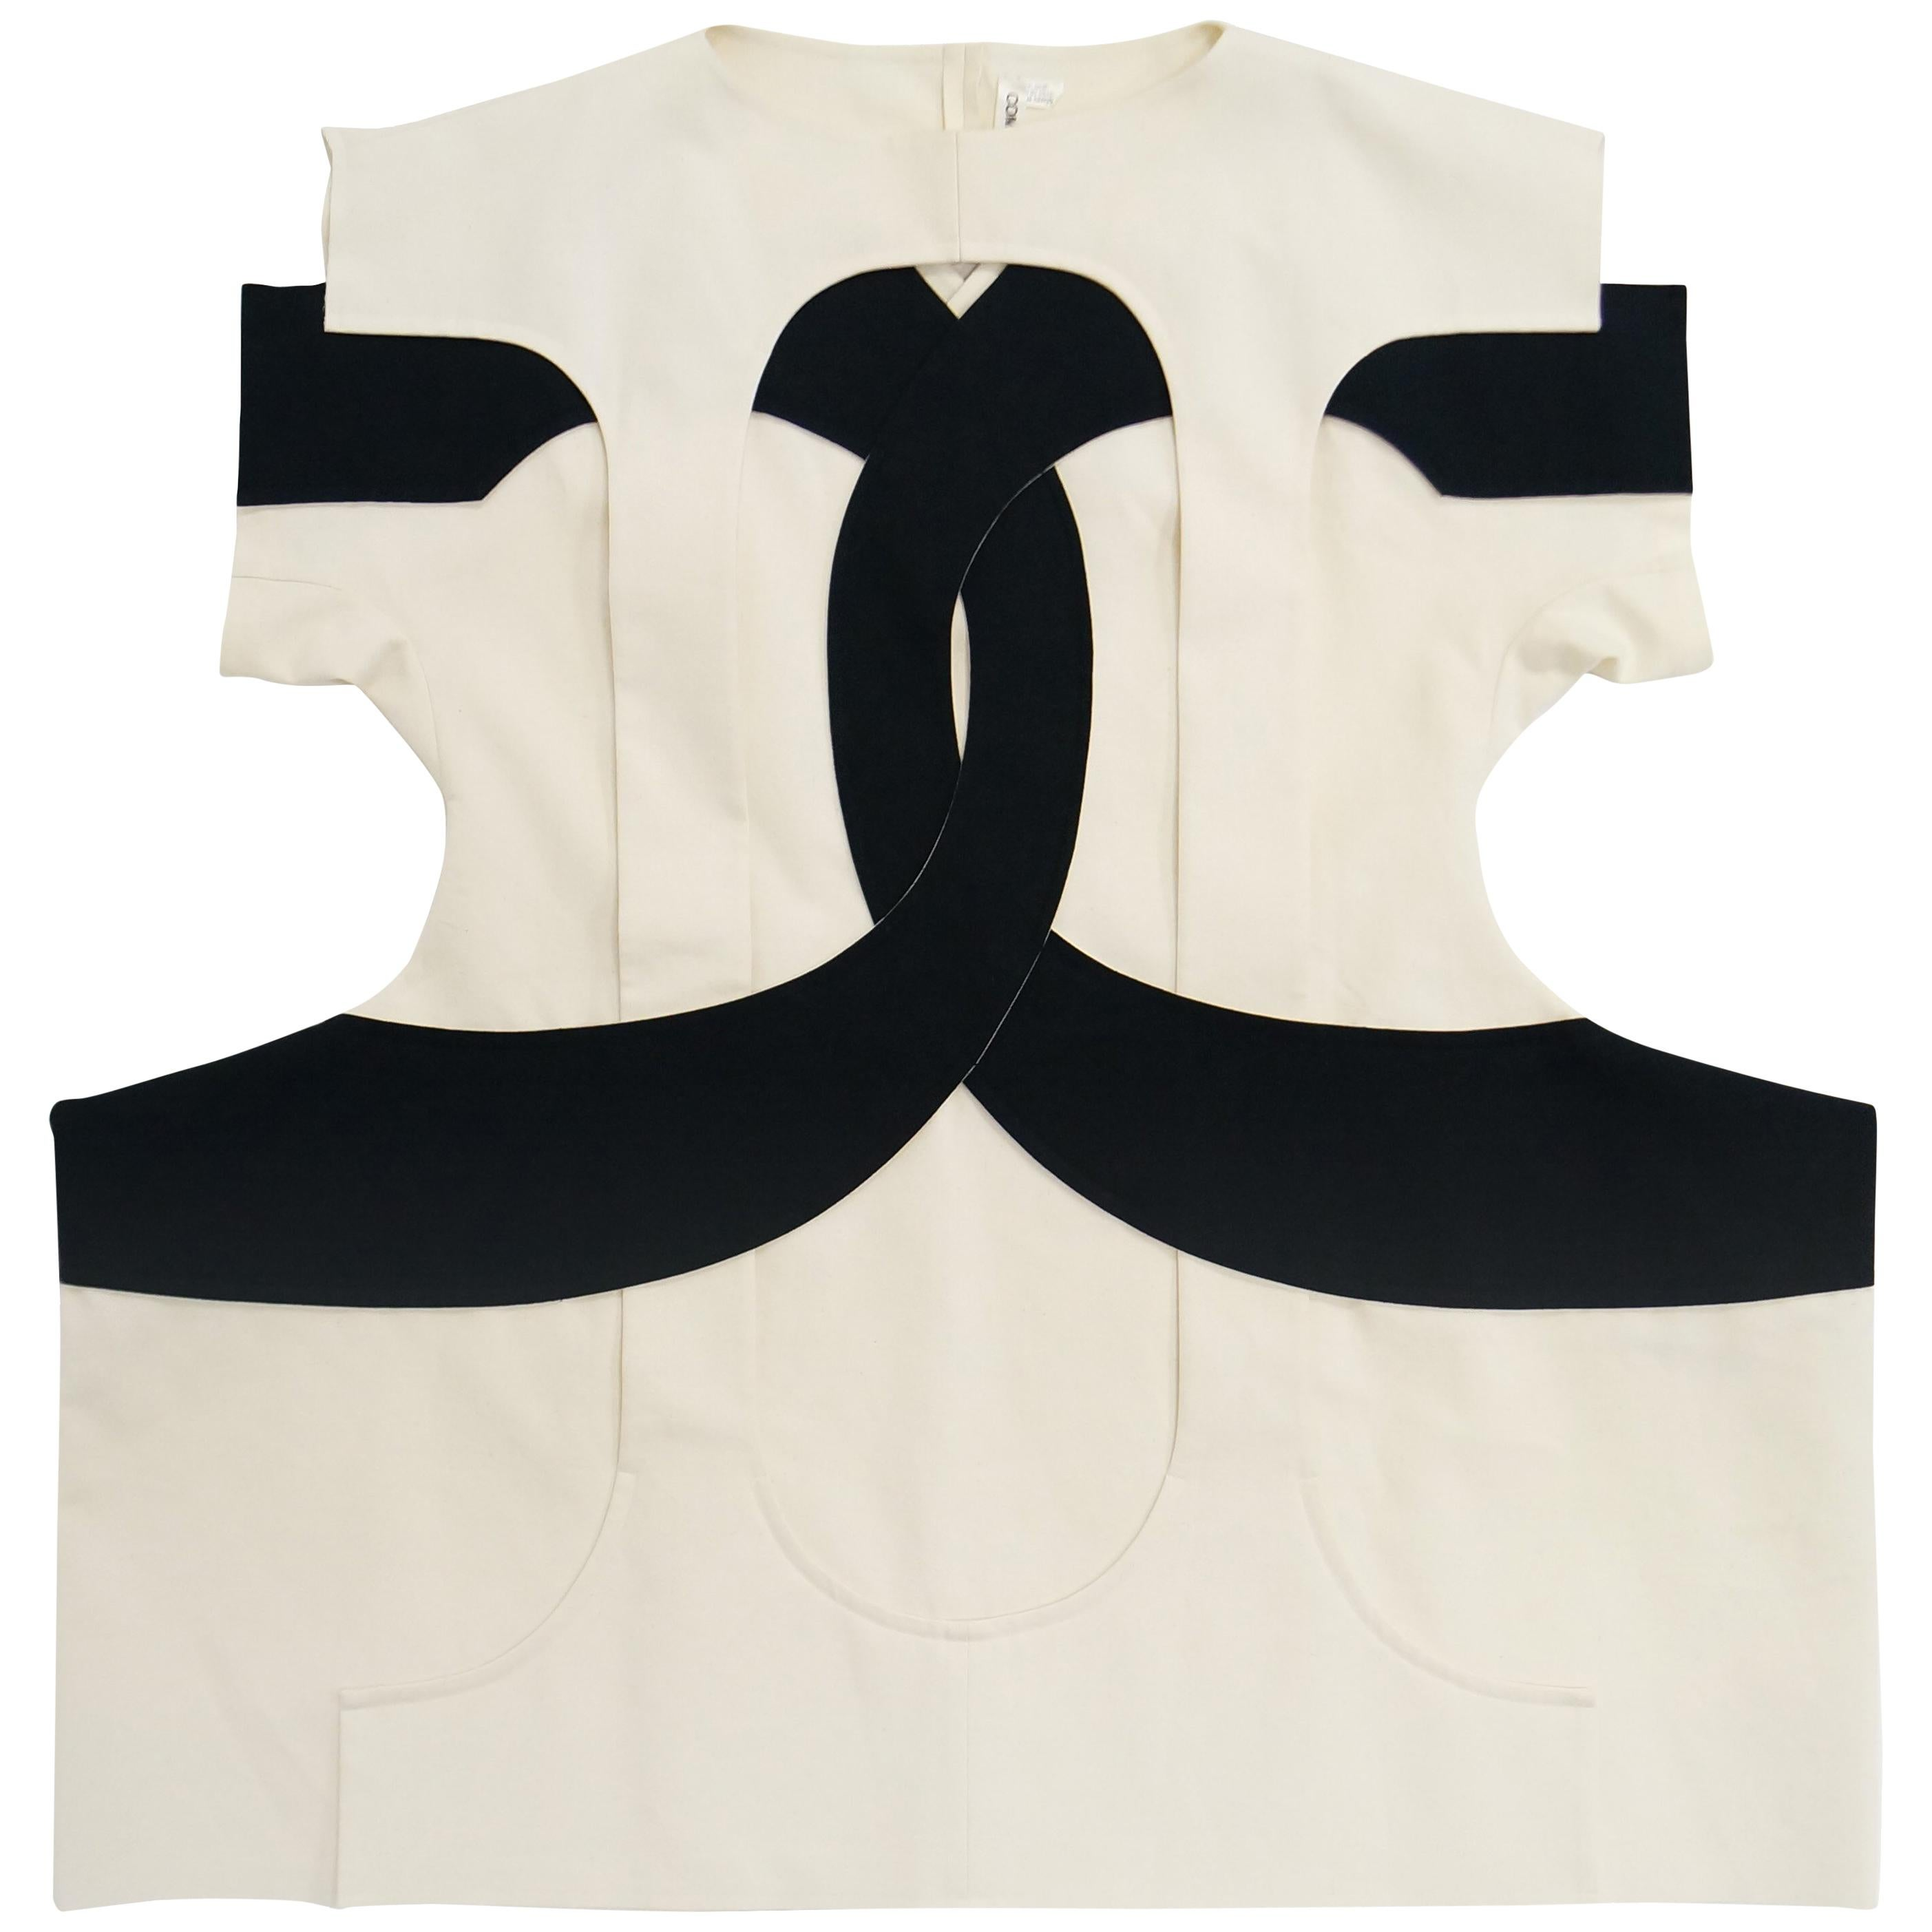 Iconic Comme des Garçons Black and White Flat Pack Runway Dress 2014